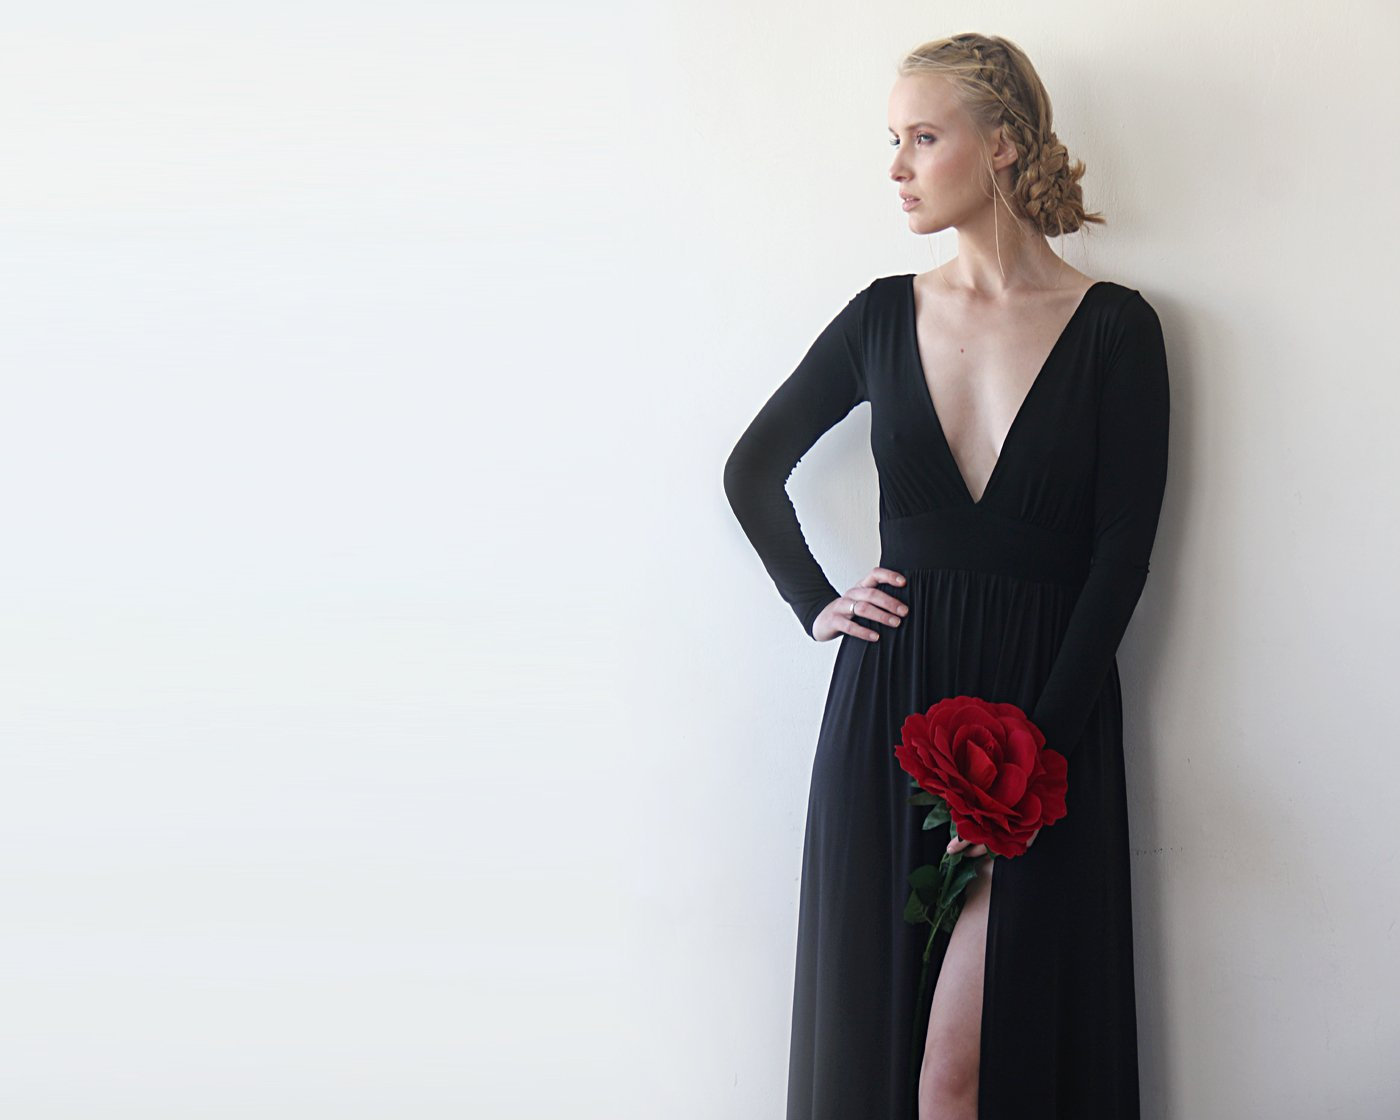 Deep-v Neckline Dress With A Sexy Slit, Long Sleeves Formal Dress, Black Evening Dress 1198